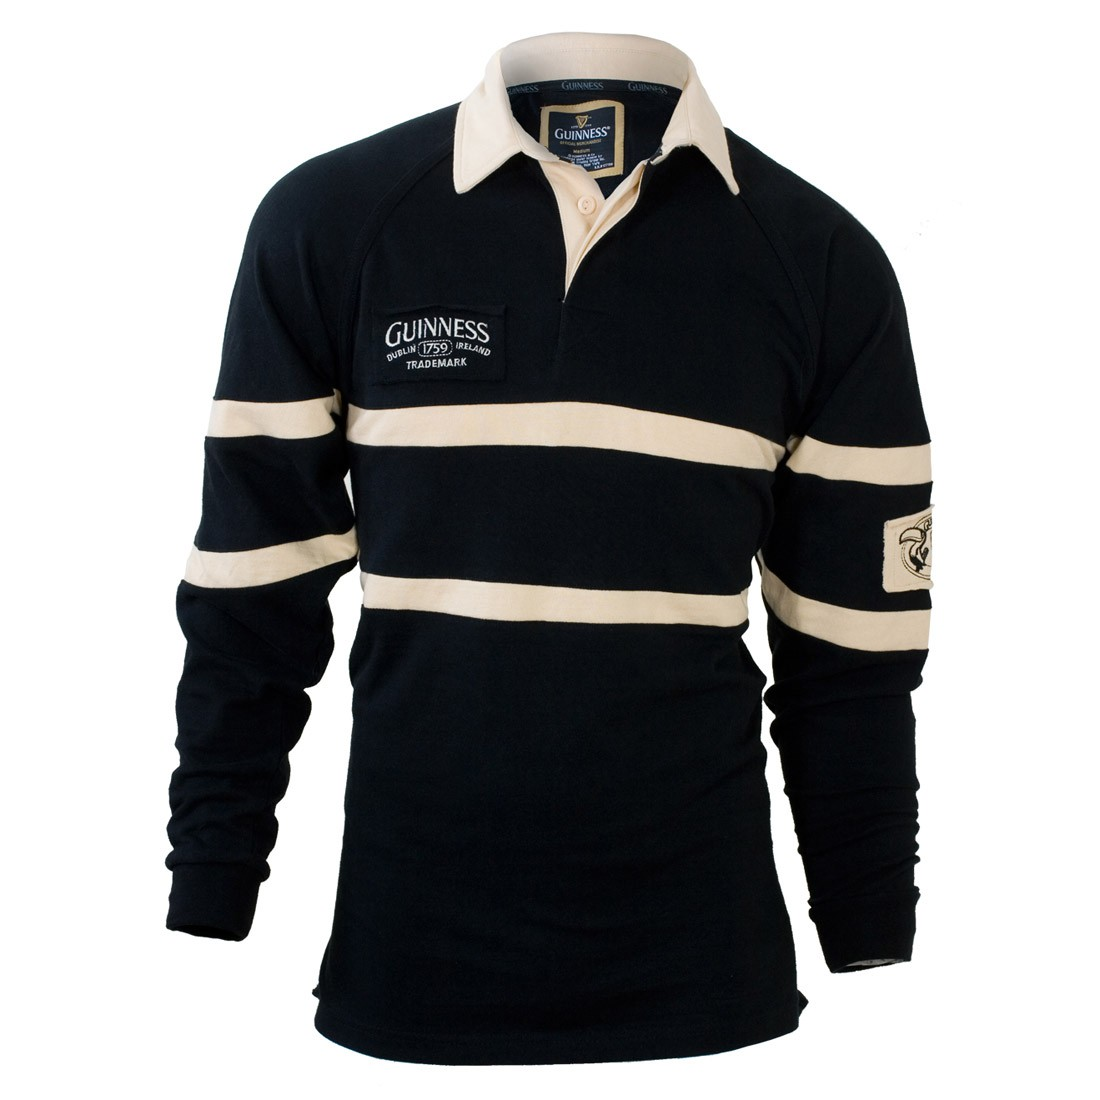 Guinness Black and Cream Rugby Shirt